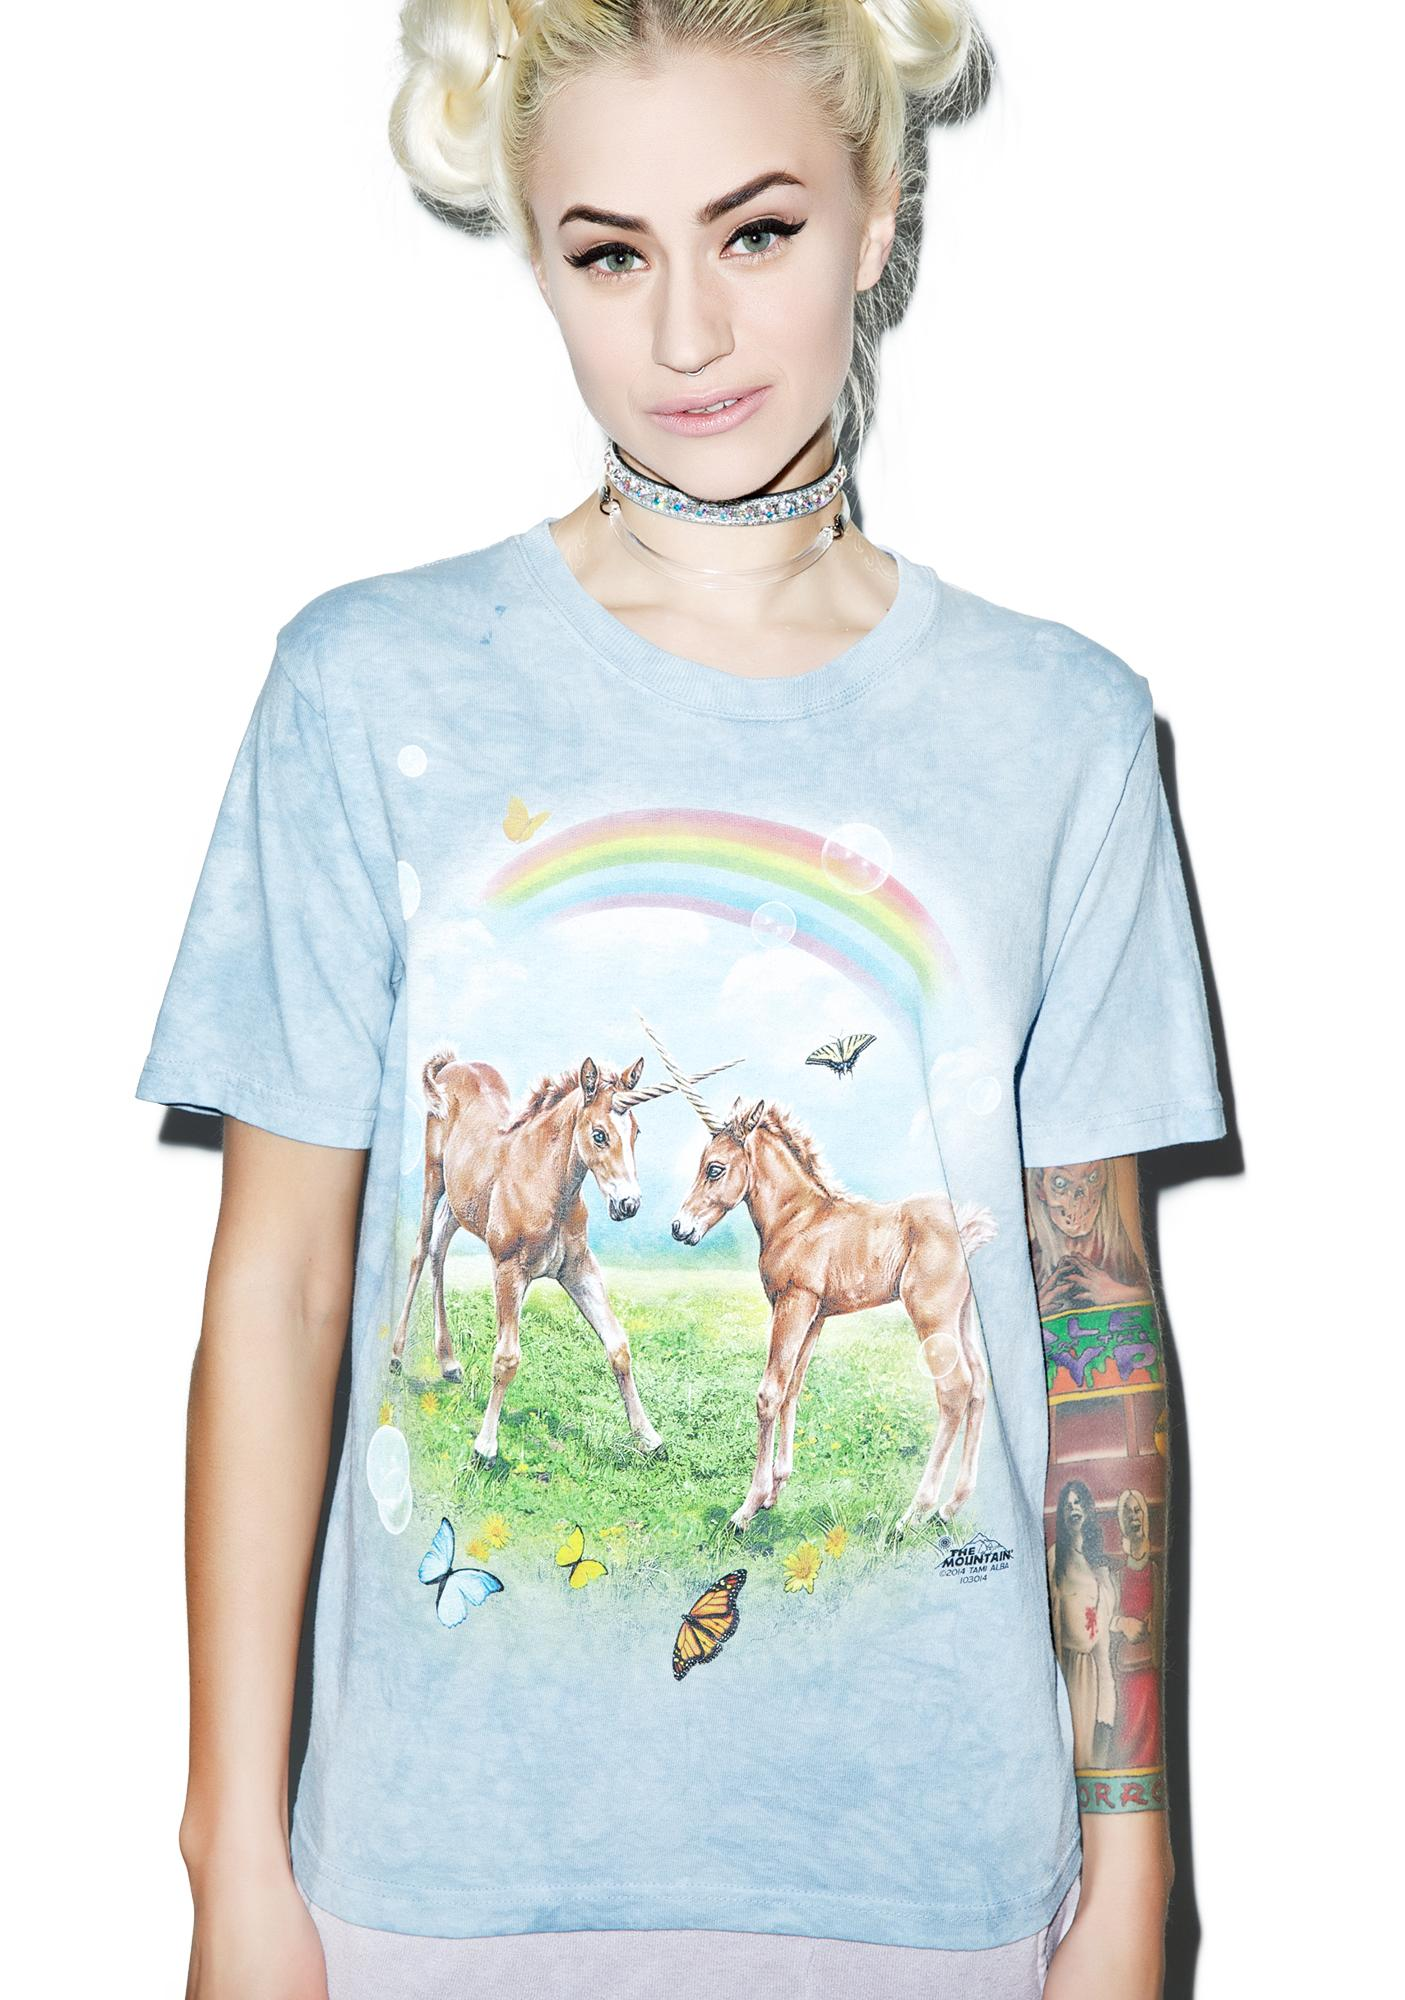 Dueling Unicorn Twins Tee